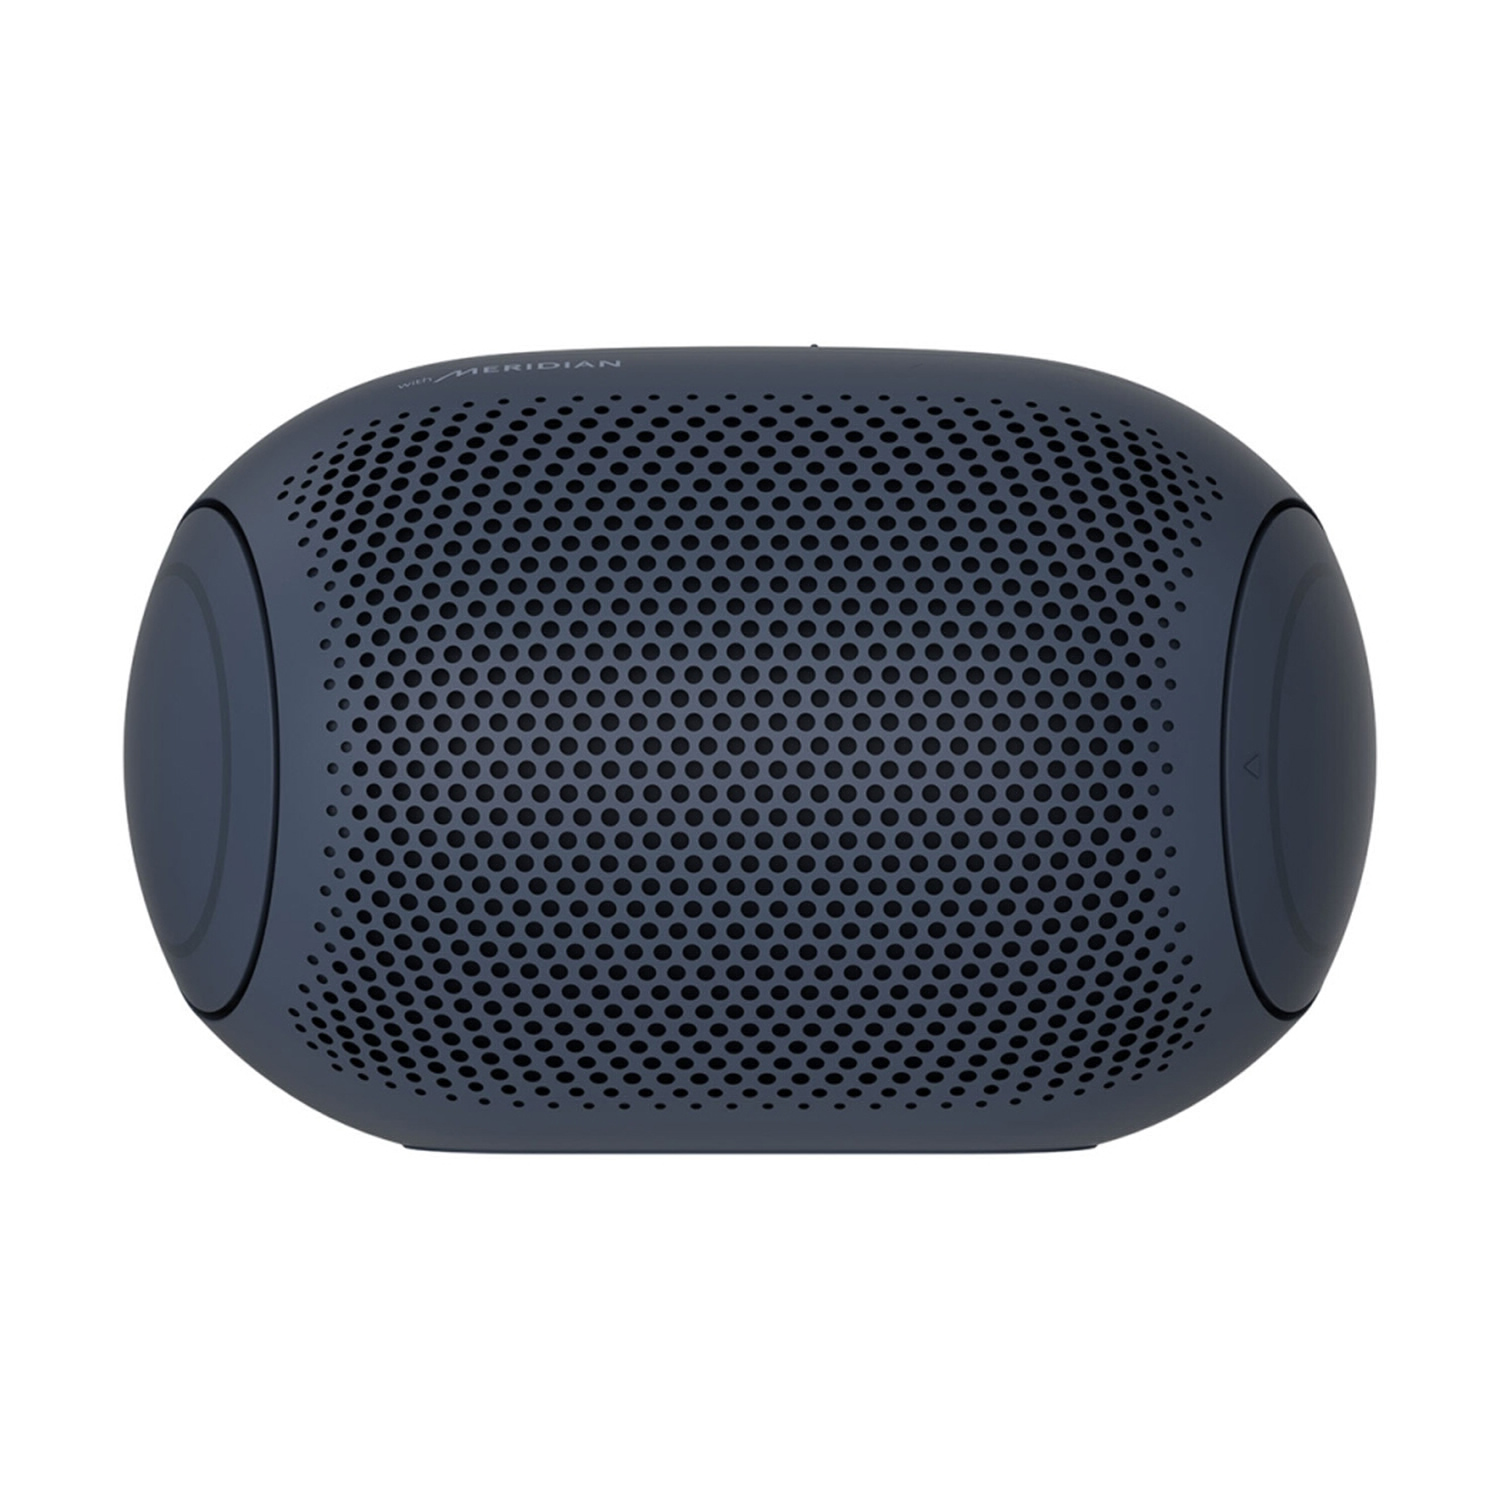 LG XBOOM Go PL2 Bluetooth-Lautsprecher 5 WATT IPX5 MERIDIAN SOUND PL2.DEUSLLK